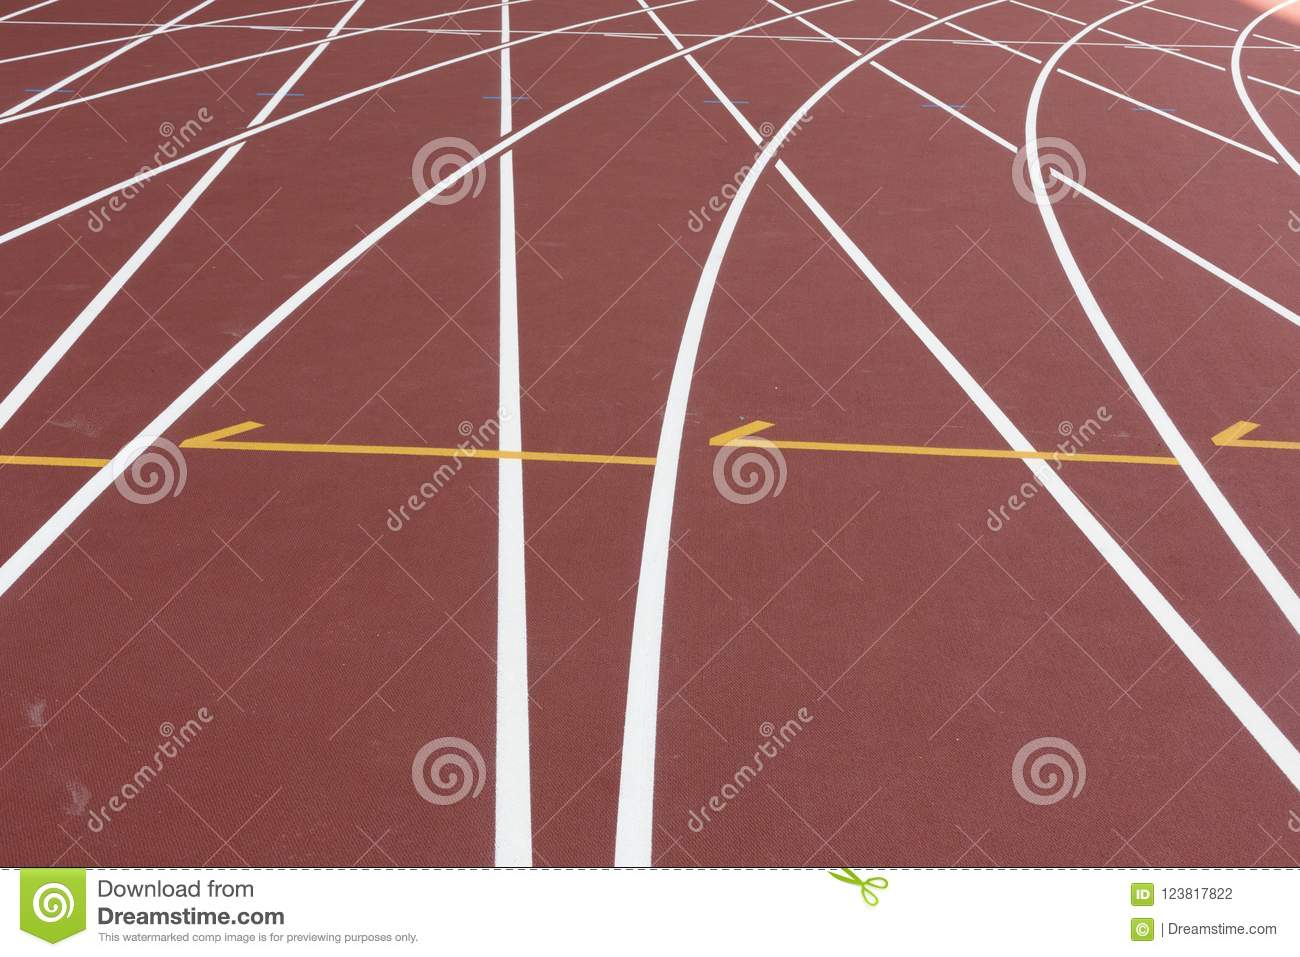 Red sport track for running on stadium shot on turn. Running healthy lifestyle concept. Sports background abstract